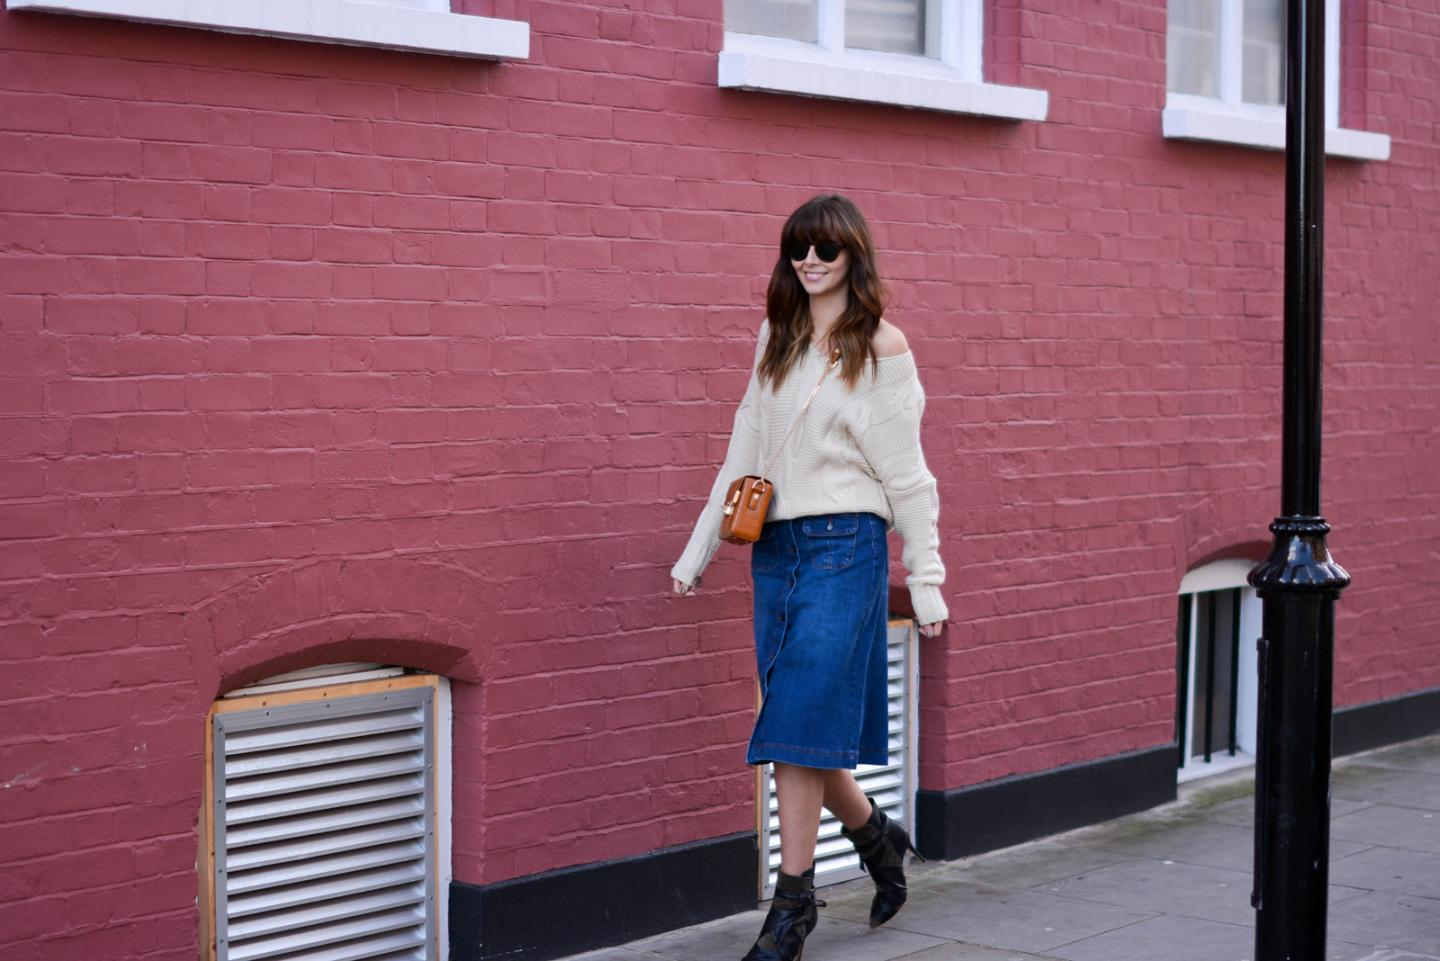 EJSTYLE - Emma Hill, 70's style, london street style, LFW AW15, M&S denim a line skirt, off shoulder cable knit jumper, isabel marant khaki ankle boots, Dune box bag